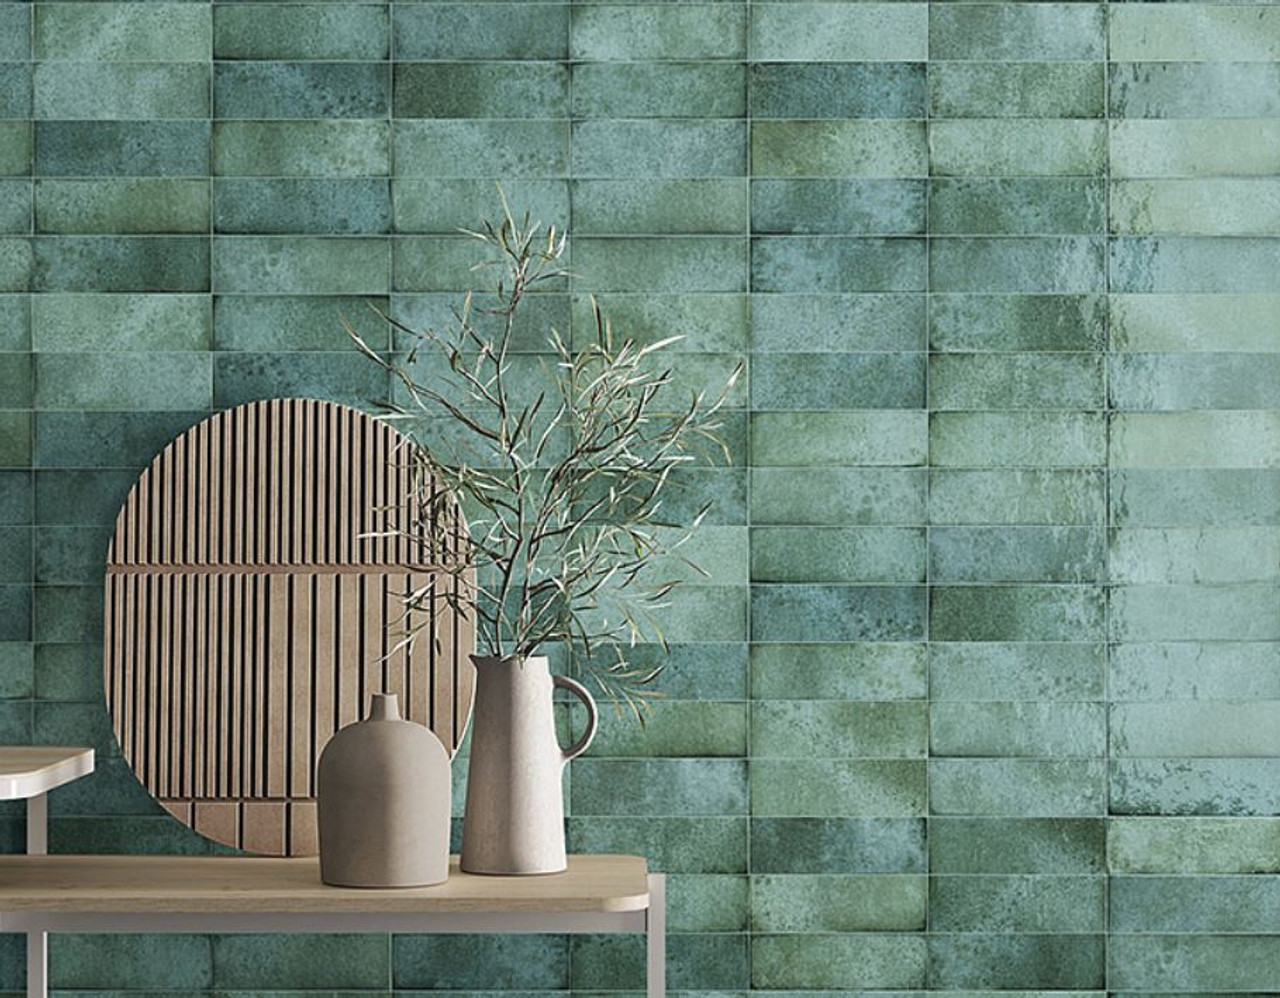 Heirloom Ceramic Tile Collection